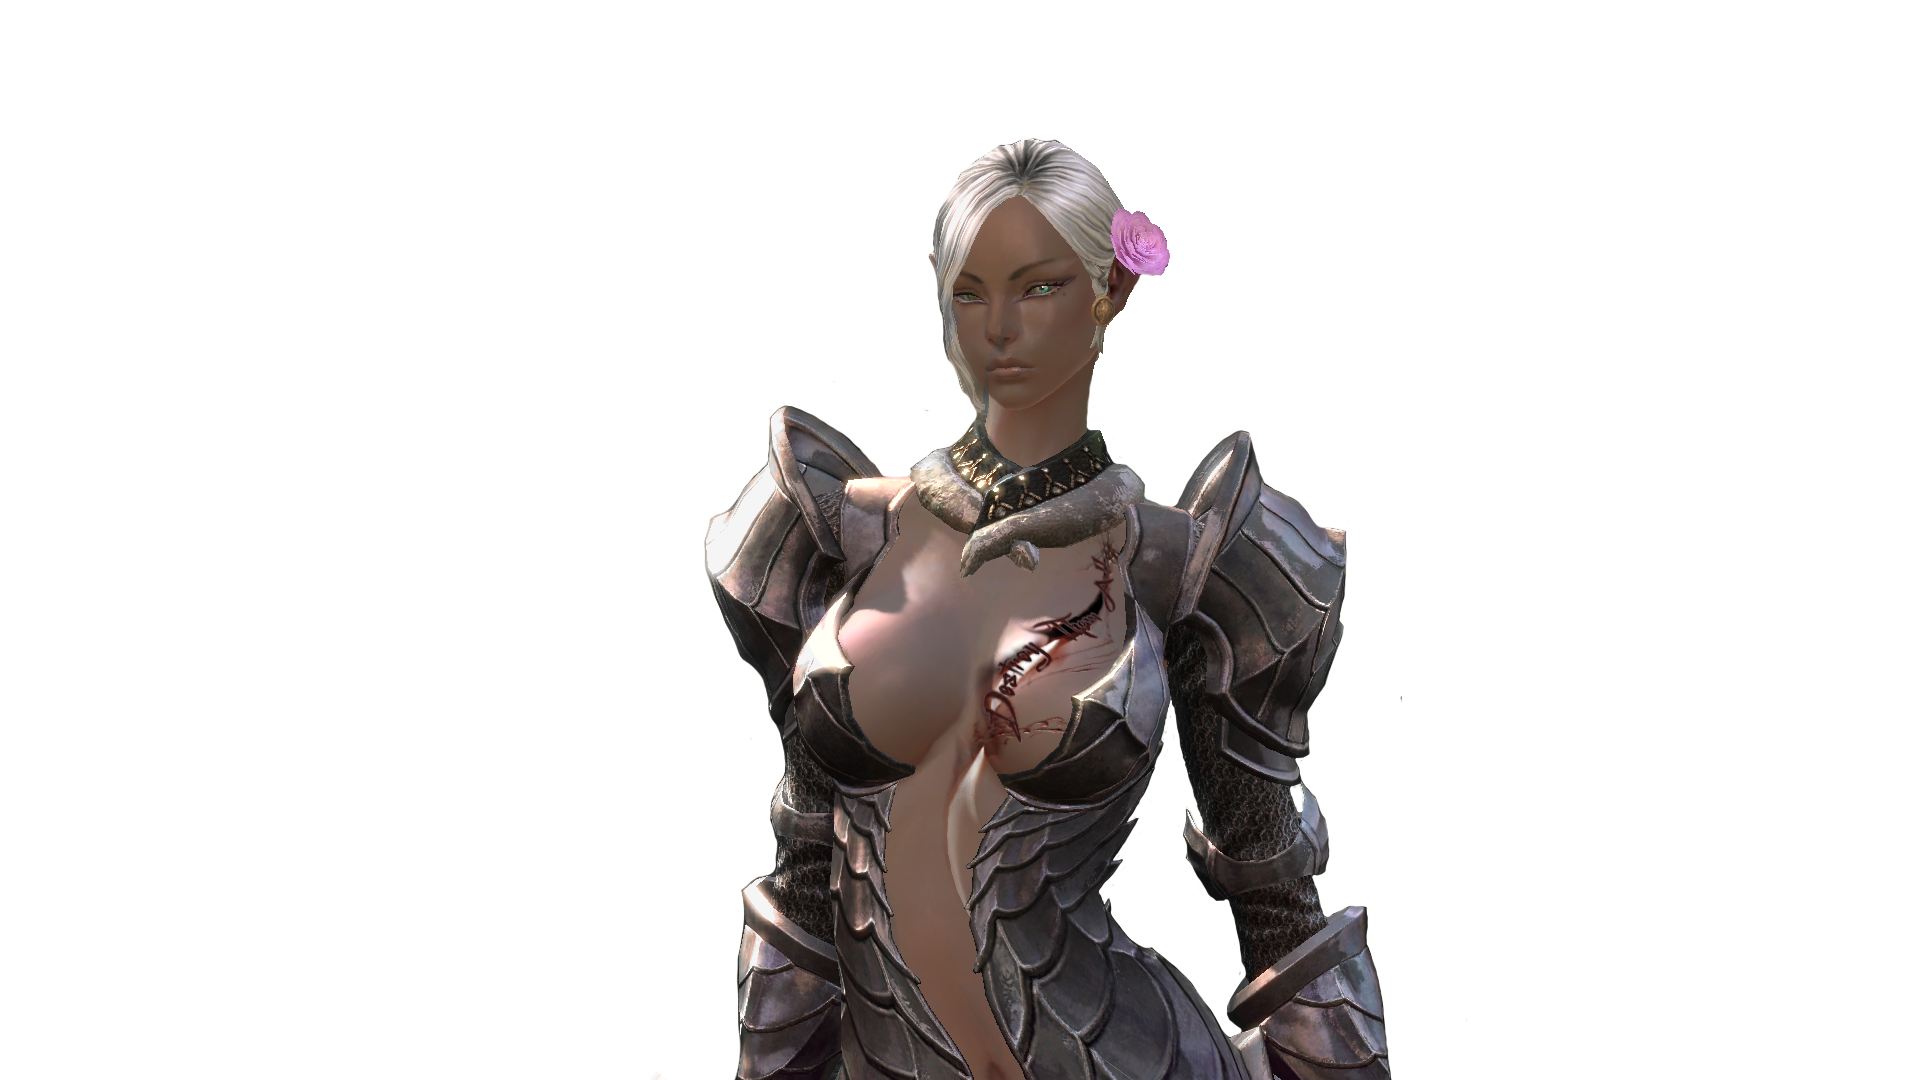 TERA_ScreenShot_20160812_082538_copy.png